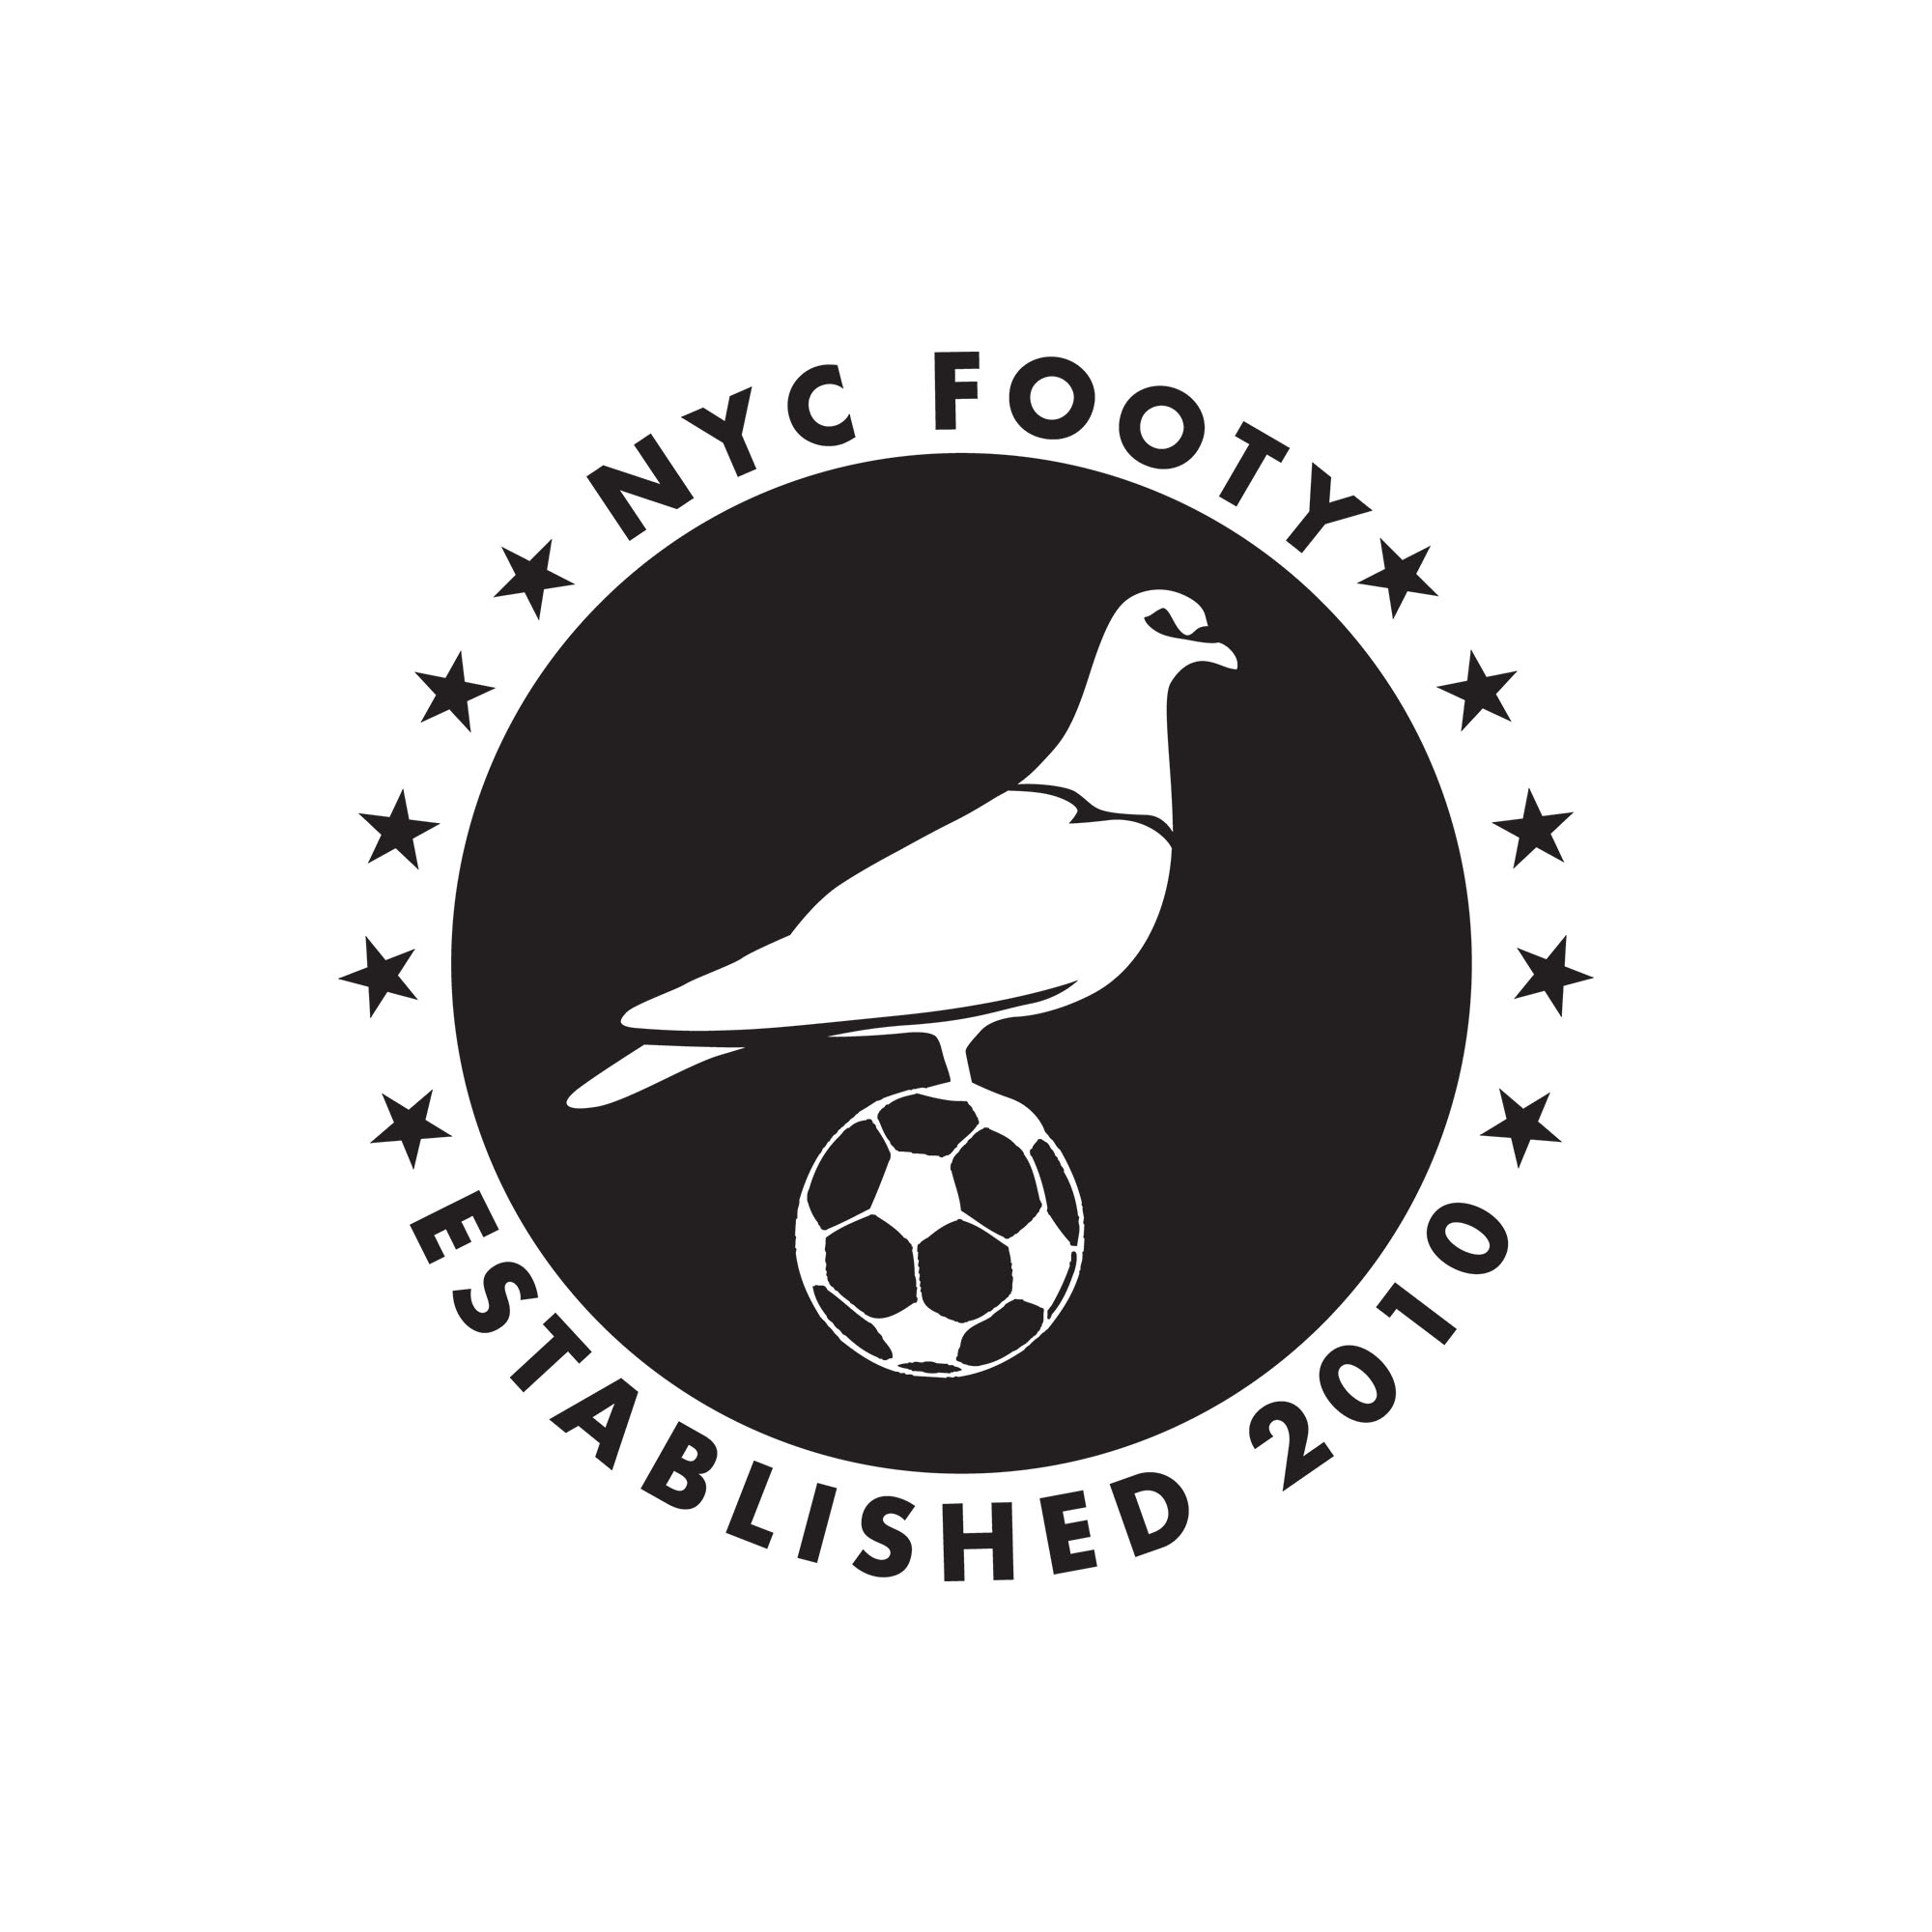 KS Master Partner Logo Template_0068_nyc footy badge.jpg